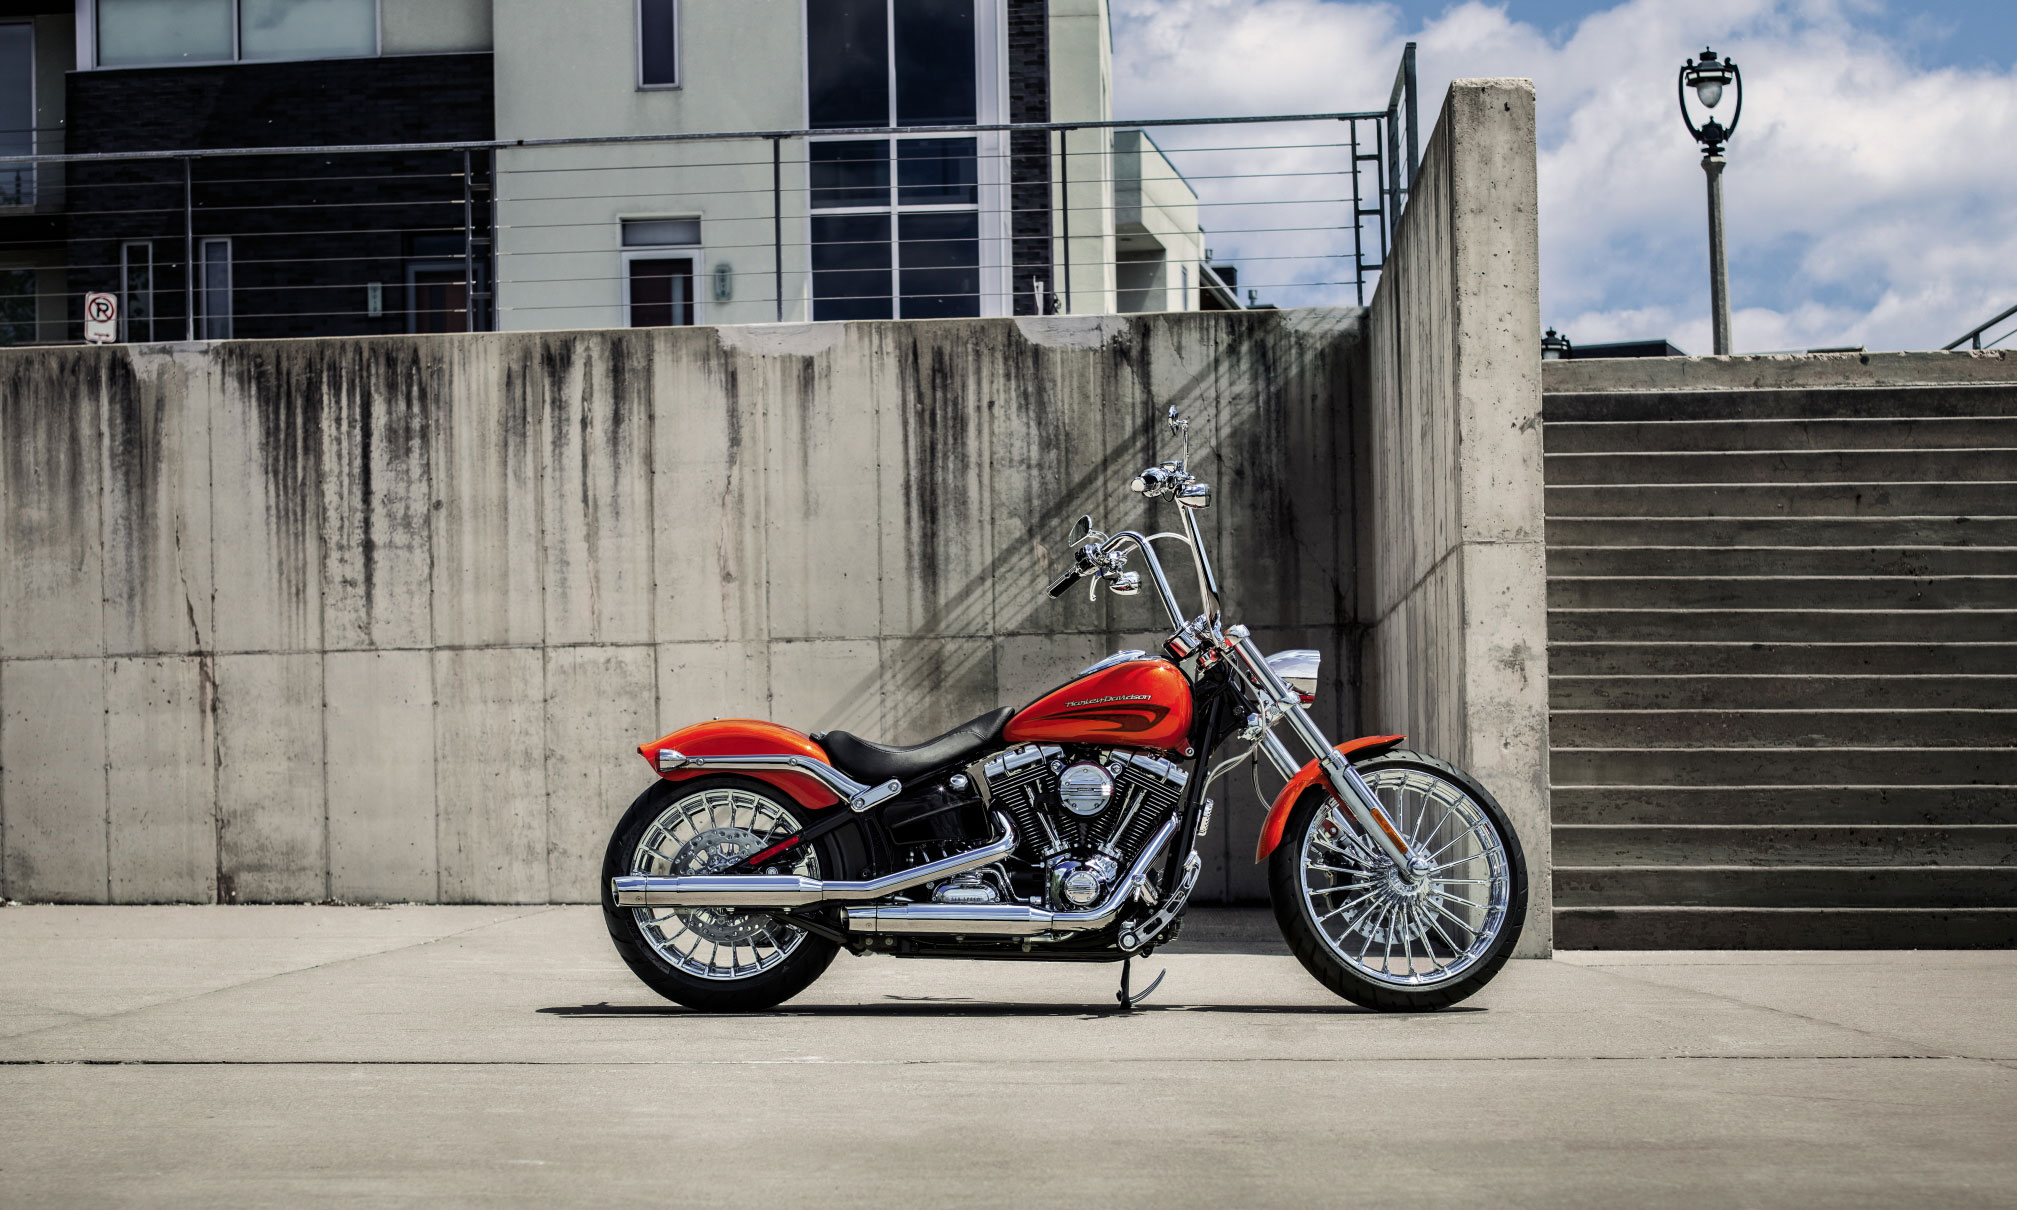 2017 Harley Davidson Breakout Full HD Wallpaper And Background Image